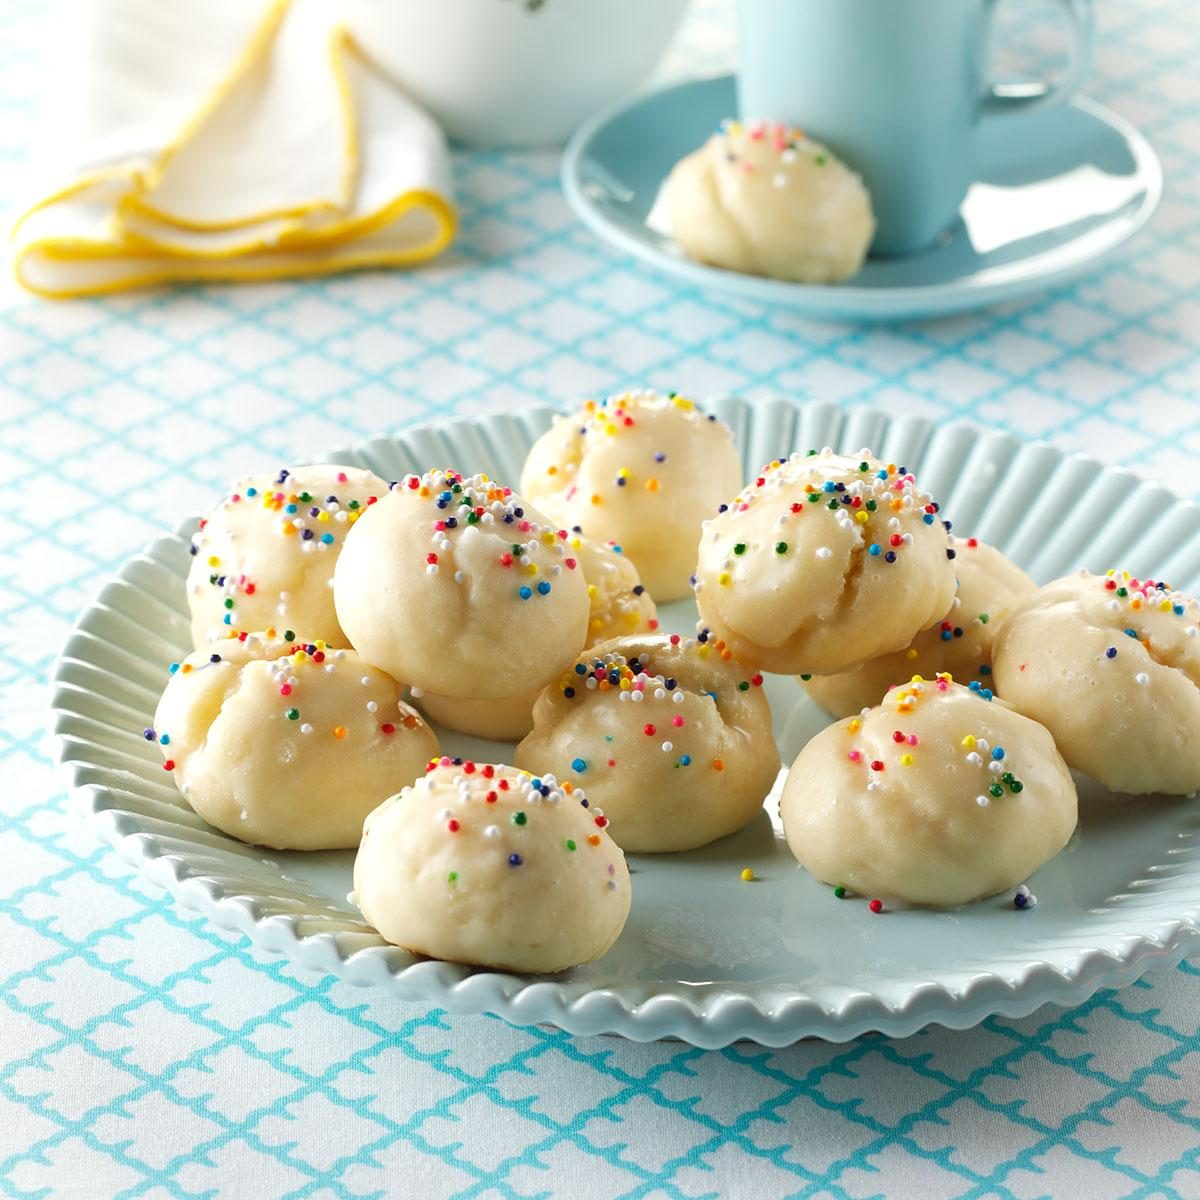 Easy Italian Desserts For A Crowd: Italian Sprinkle Cookies Recipe